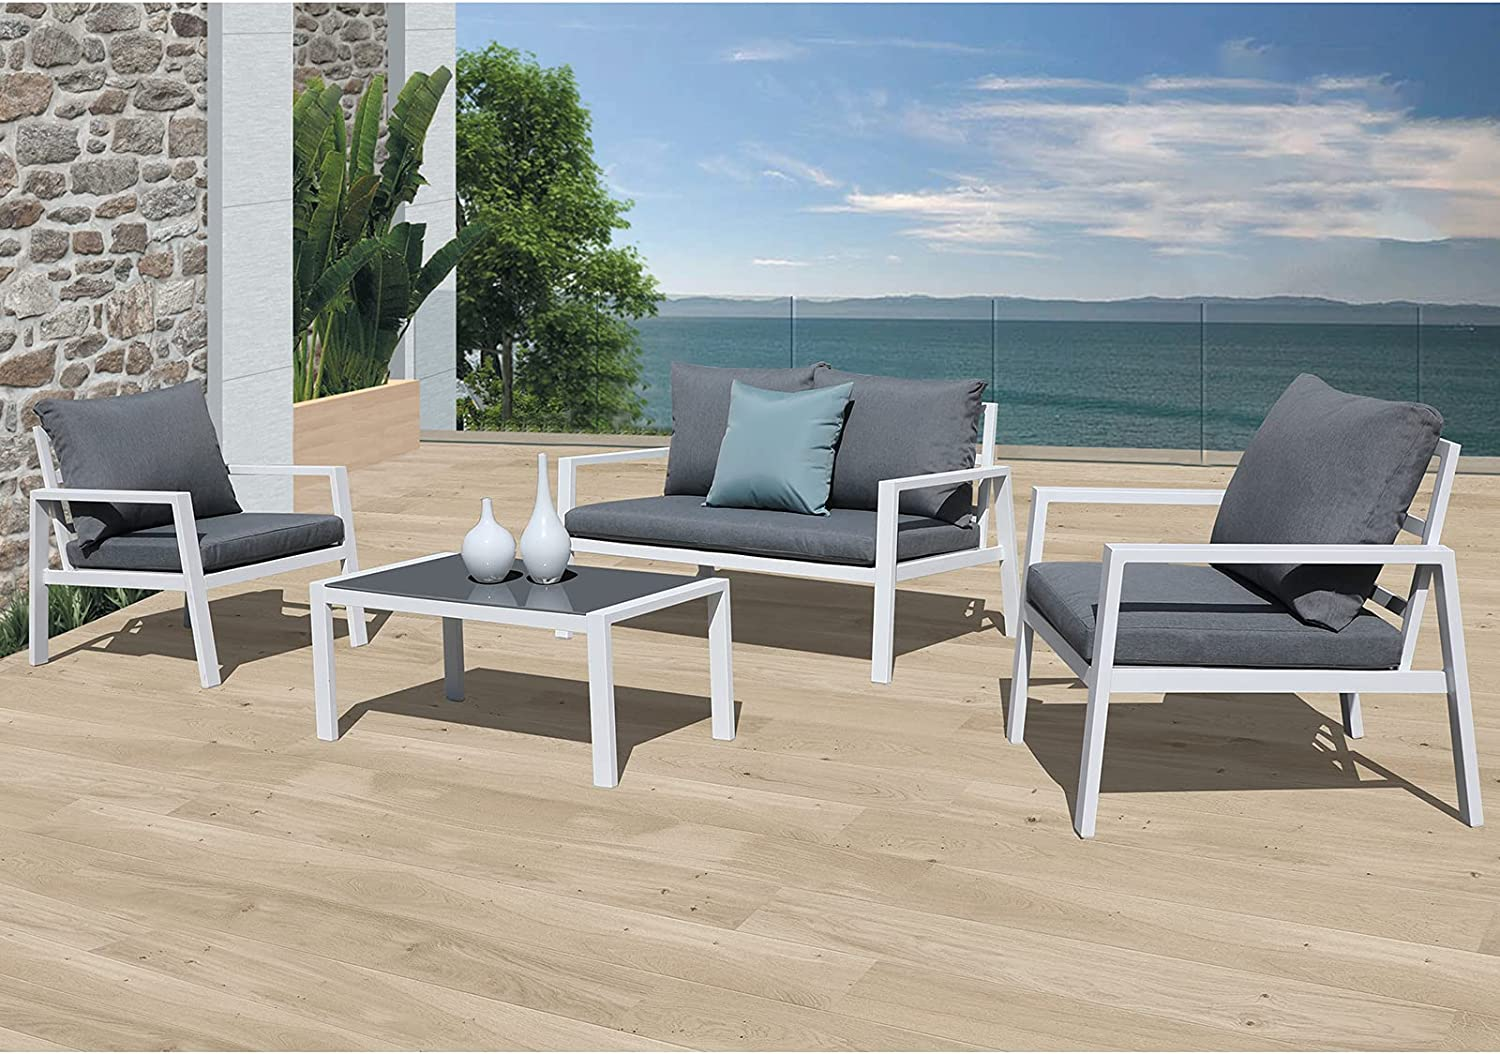 Soleil Jardin 4-Piece Outdoor Patio Sectional Furniture Set, Aluminum Conversation Sofa Set with Removable Cushions, Tempered Glass Top Coffee Table, White Finish & Grey Cushion